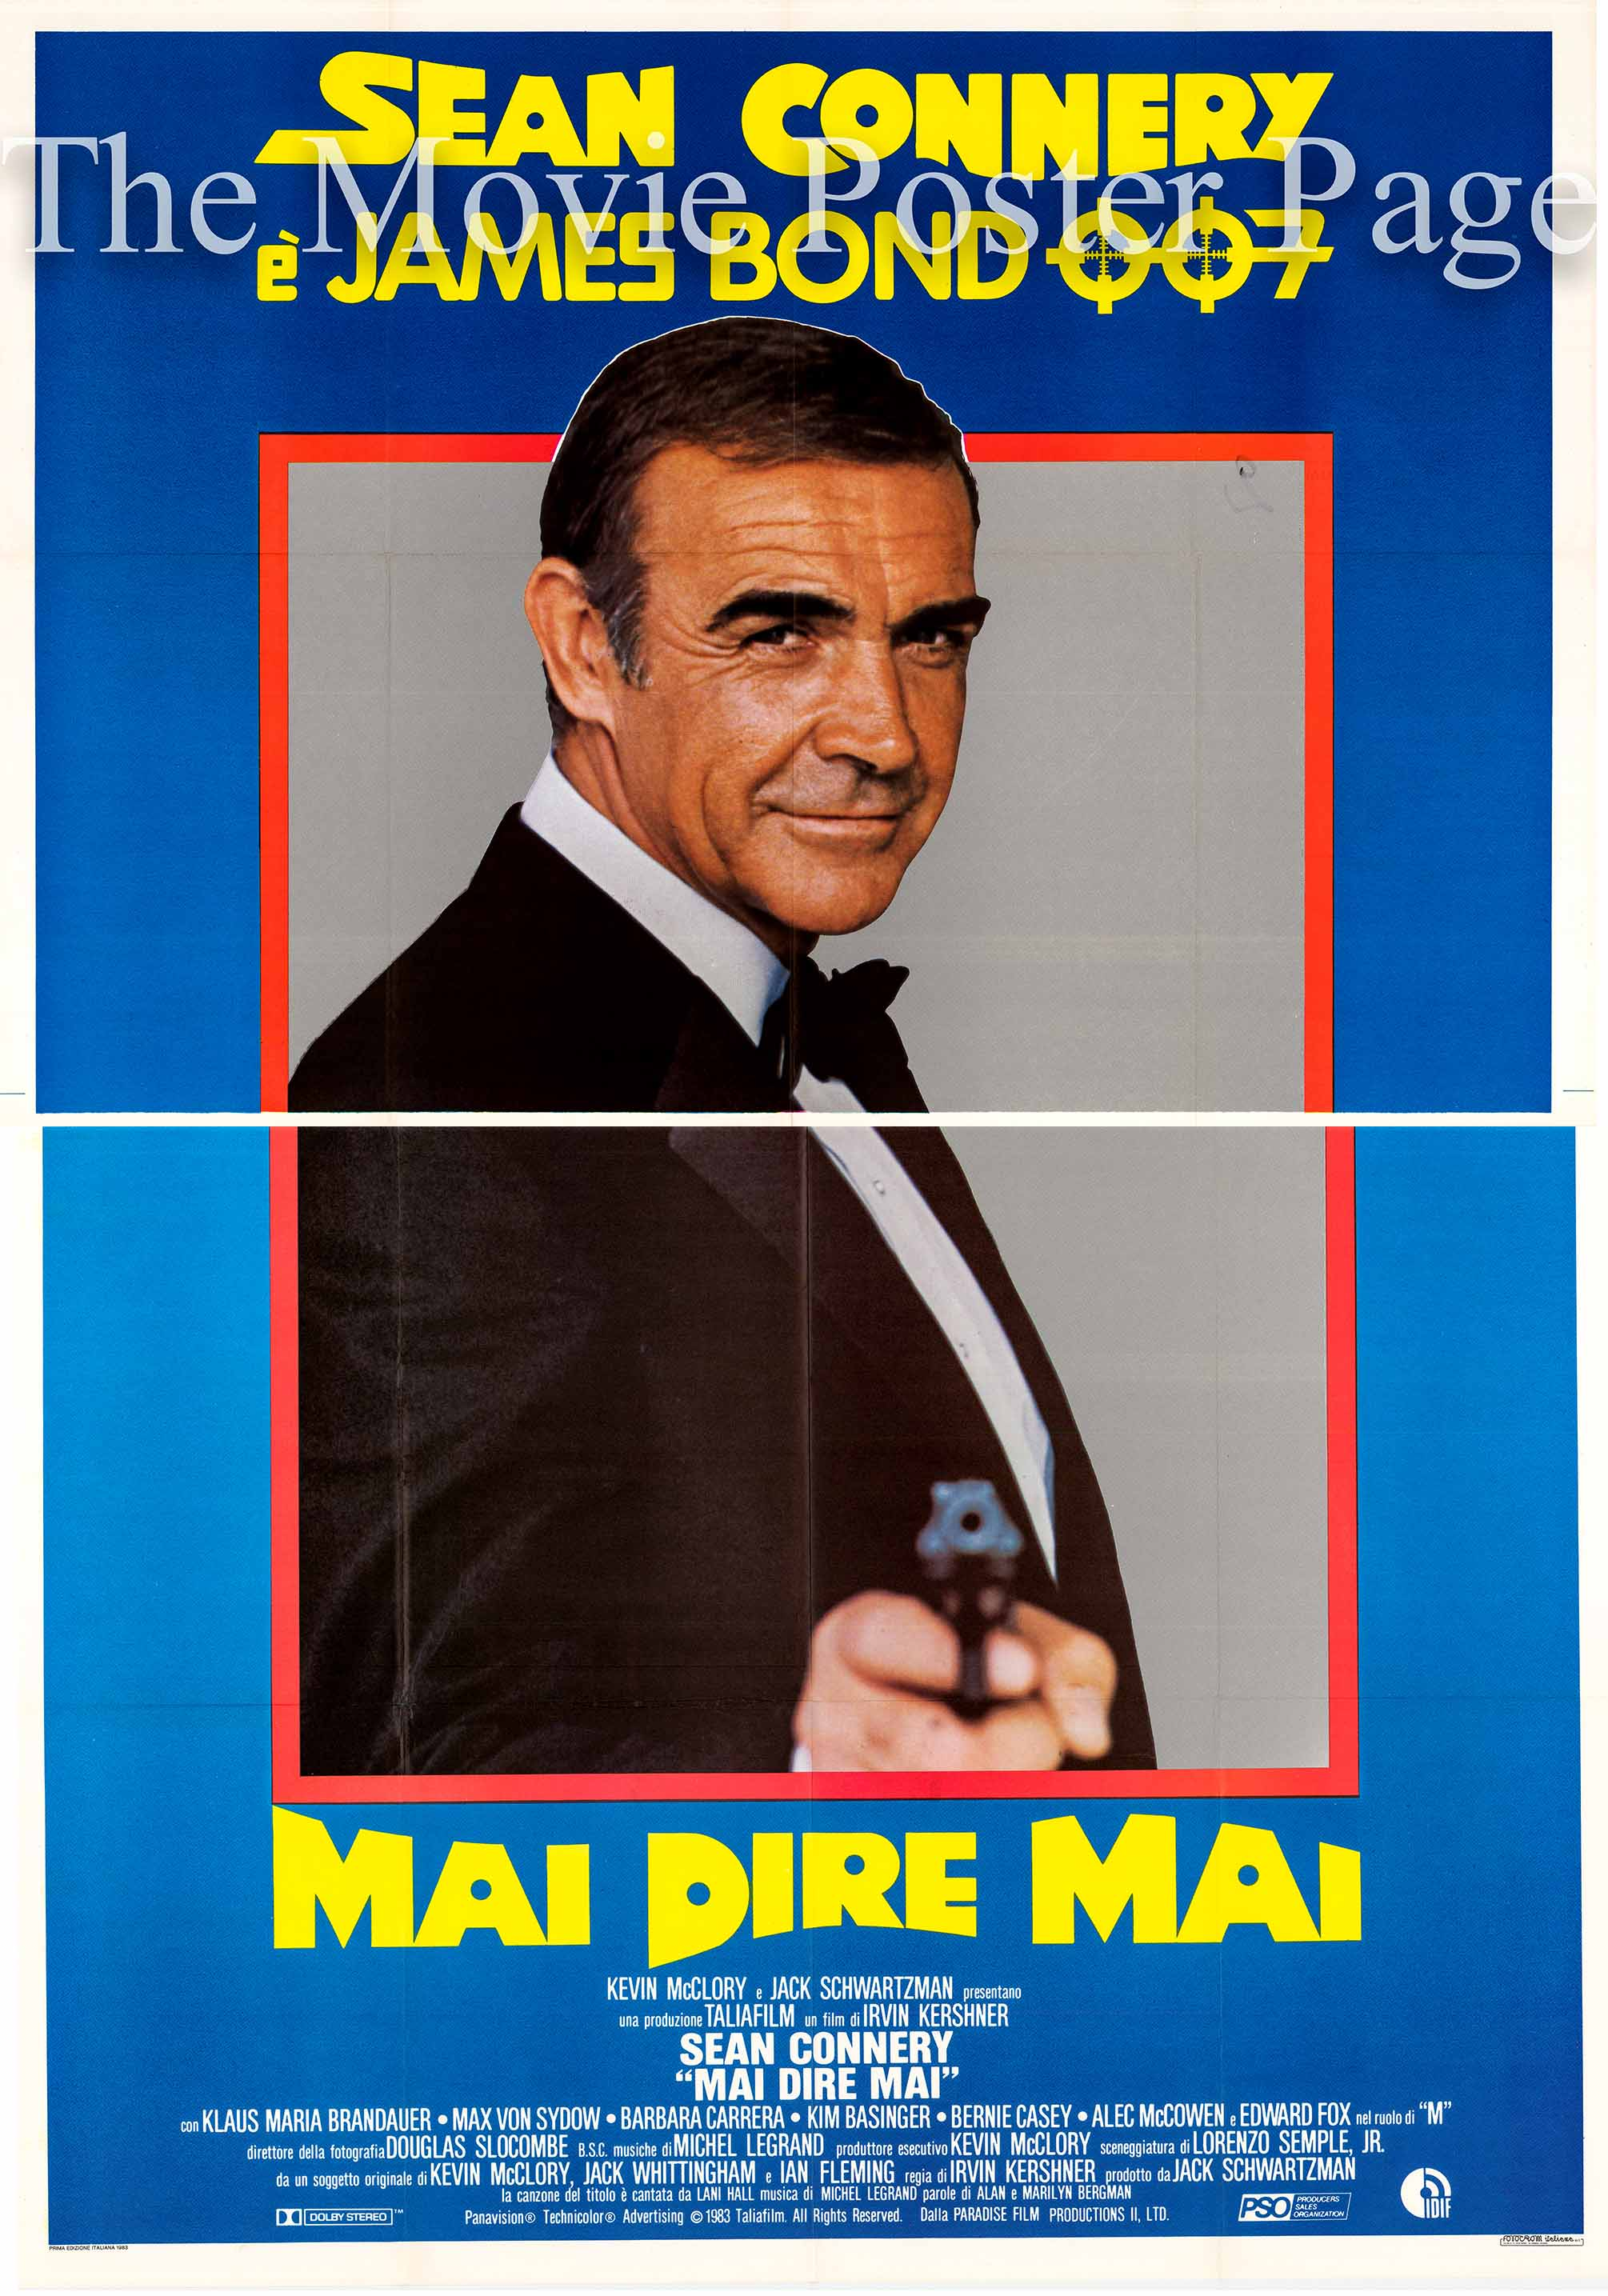 pictured is an Italian 4-sheet promotional poster for the 1983 Irvin Kershner film Never Say Never Again starring Sean Connery as James Bond.